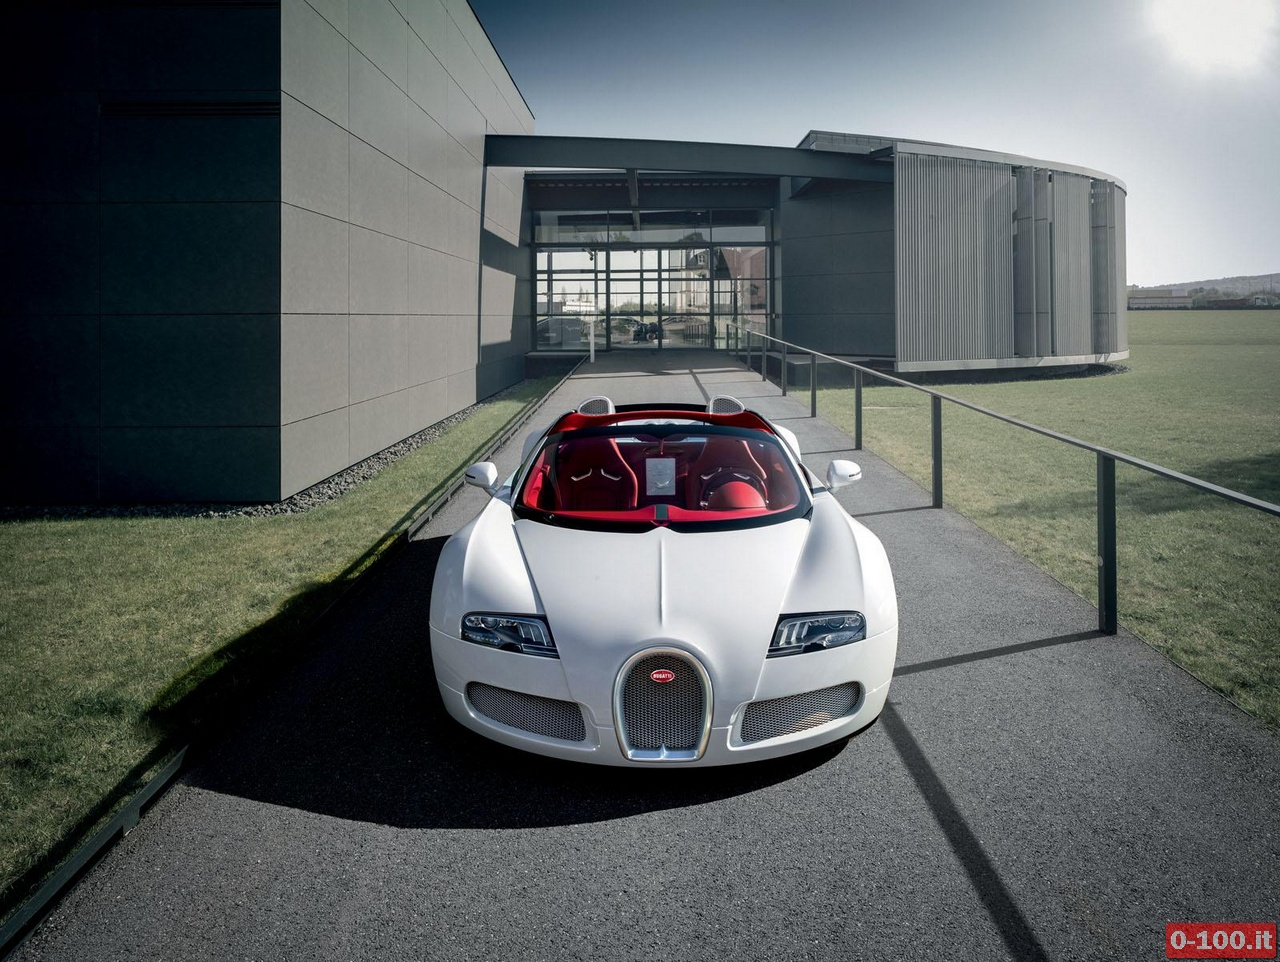 bugatti_veyron_grand_sport_wei-long_2012_0-100_43